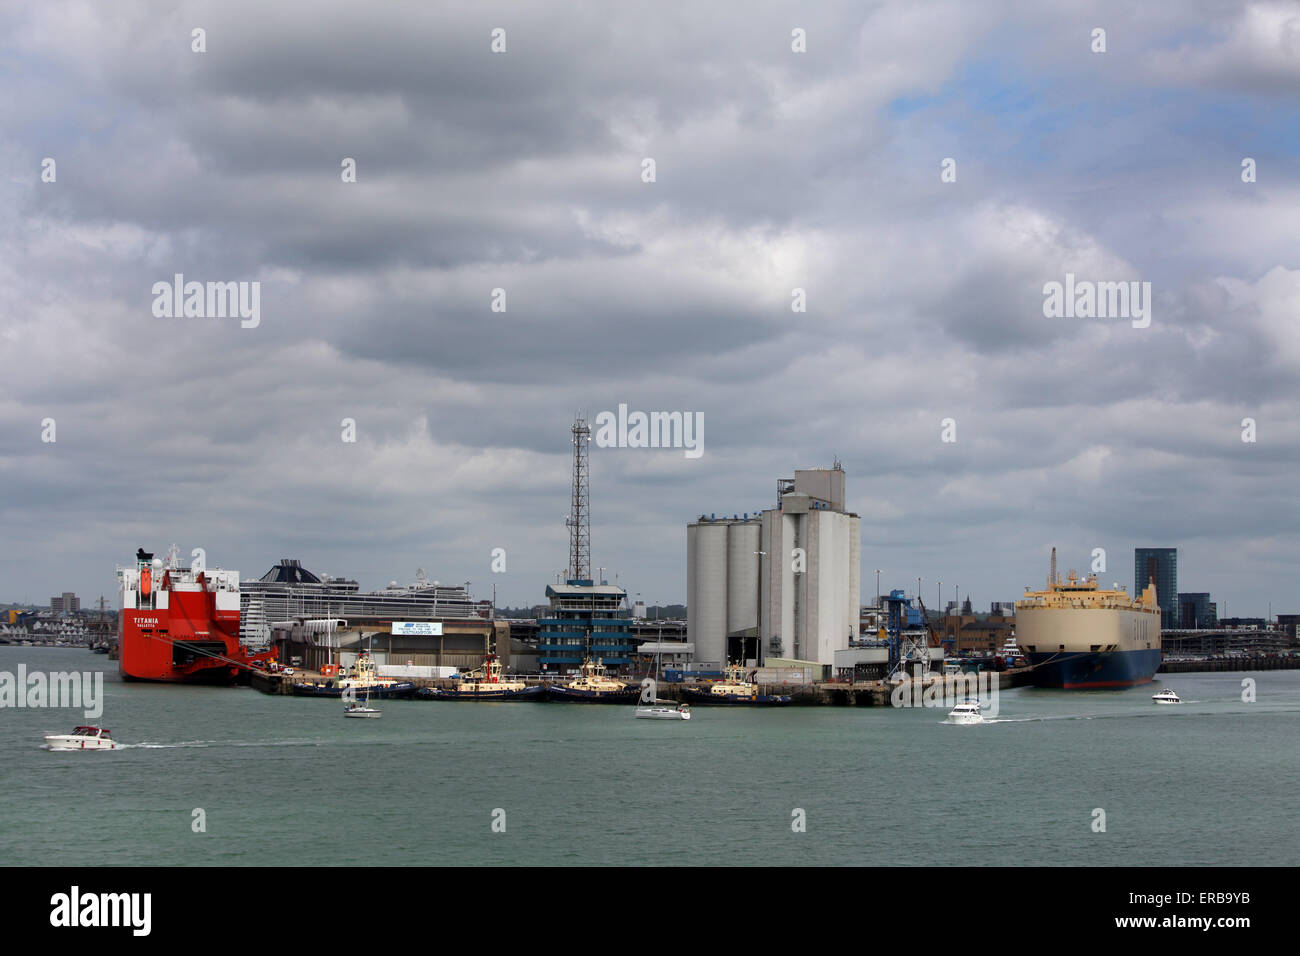 Dock Head in Southampton port and docks - Stock Image